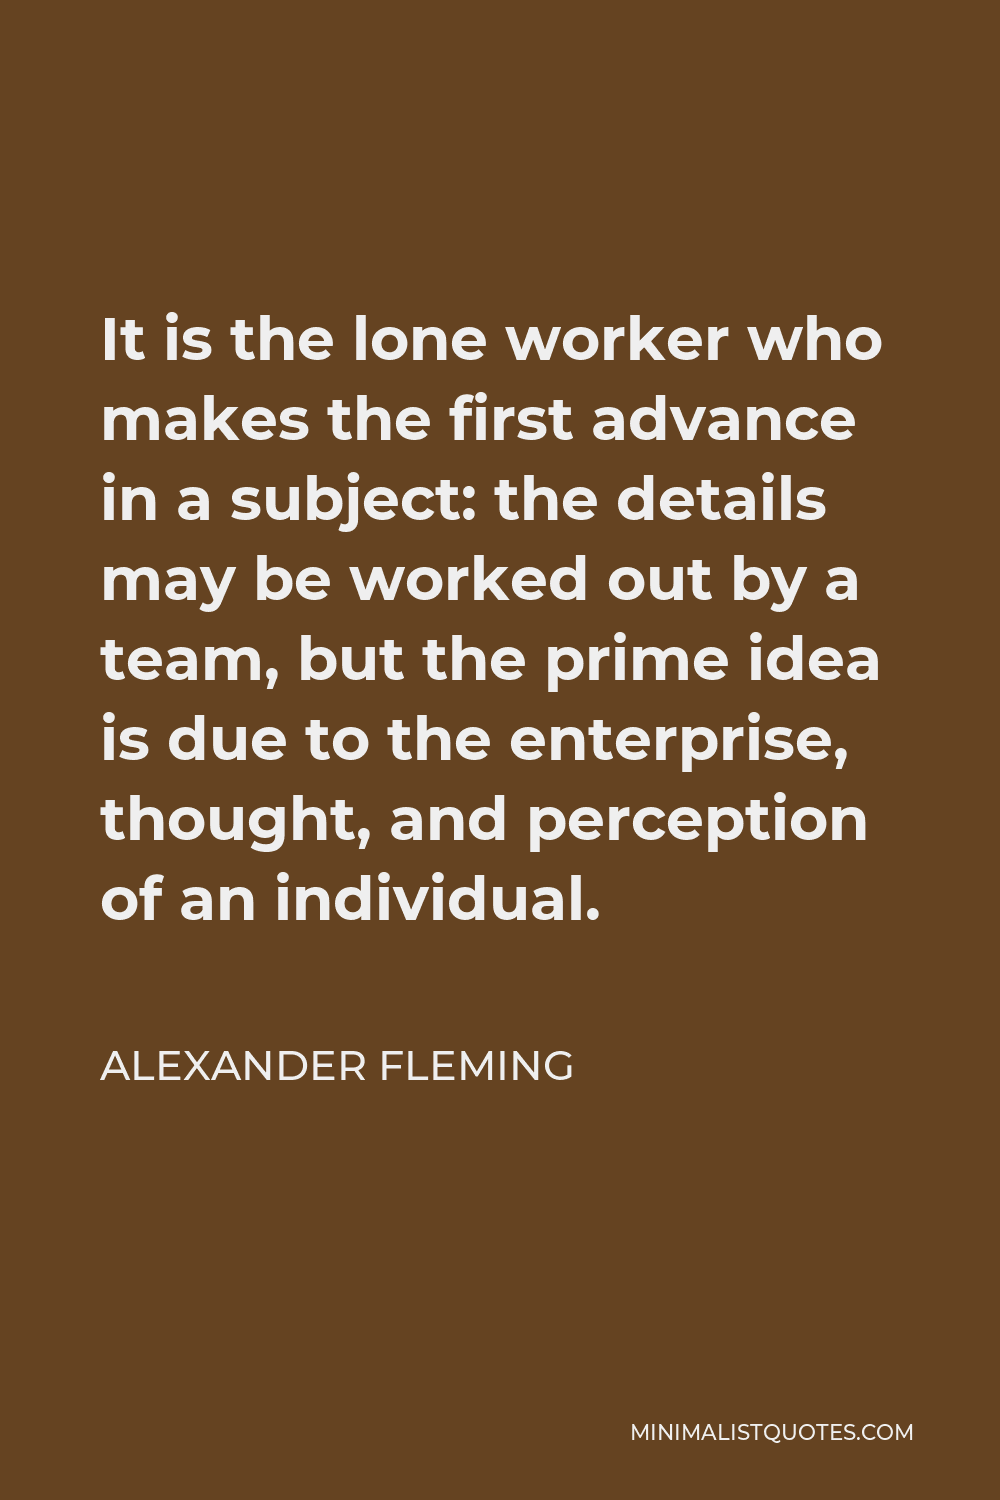 Alexander Fleming Quote - It is the lone worker who makes the first advance in a subject: the details may be worked out by a team, but the prime idea is due to the enterprise, thought, and perception of an individual.